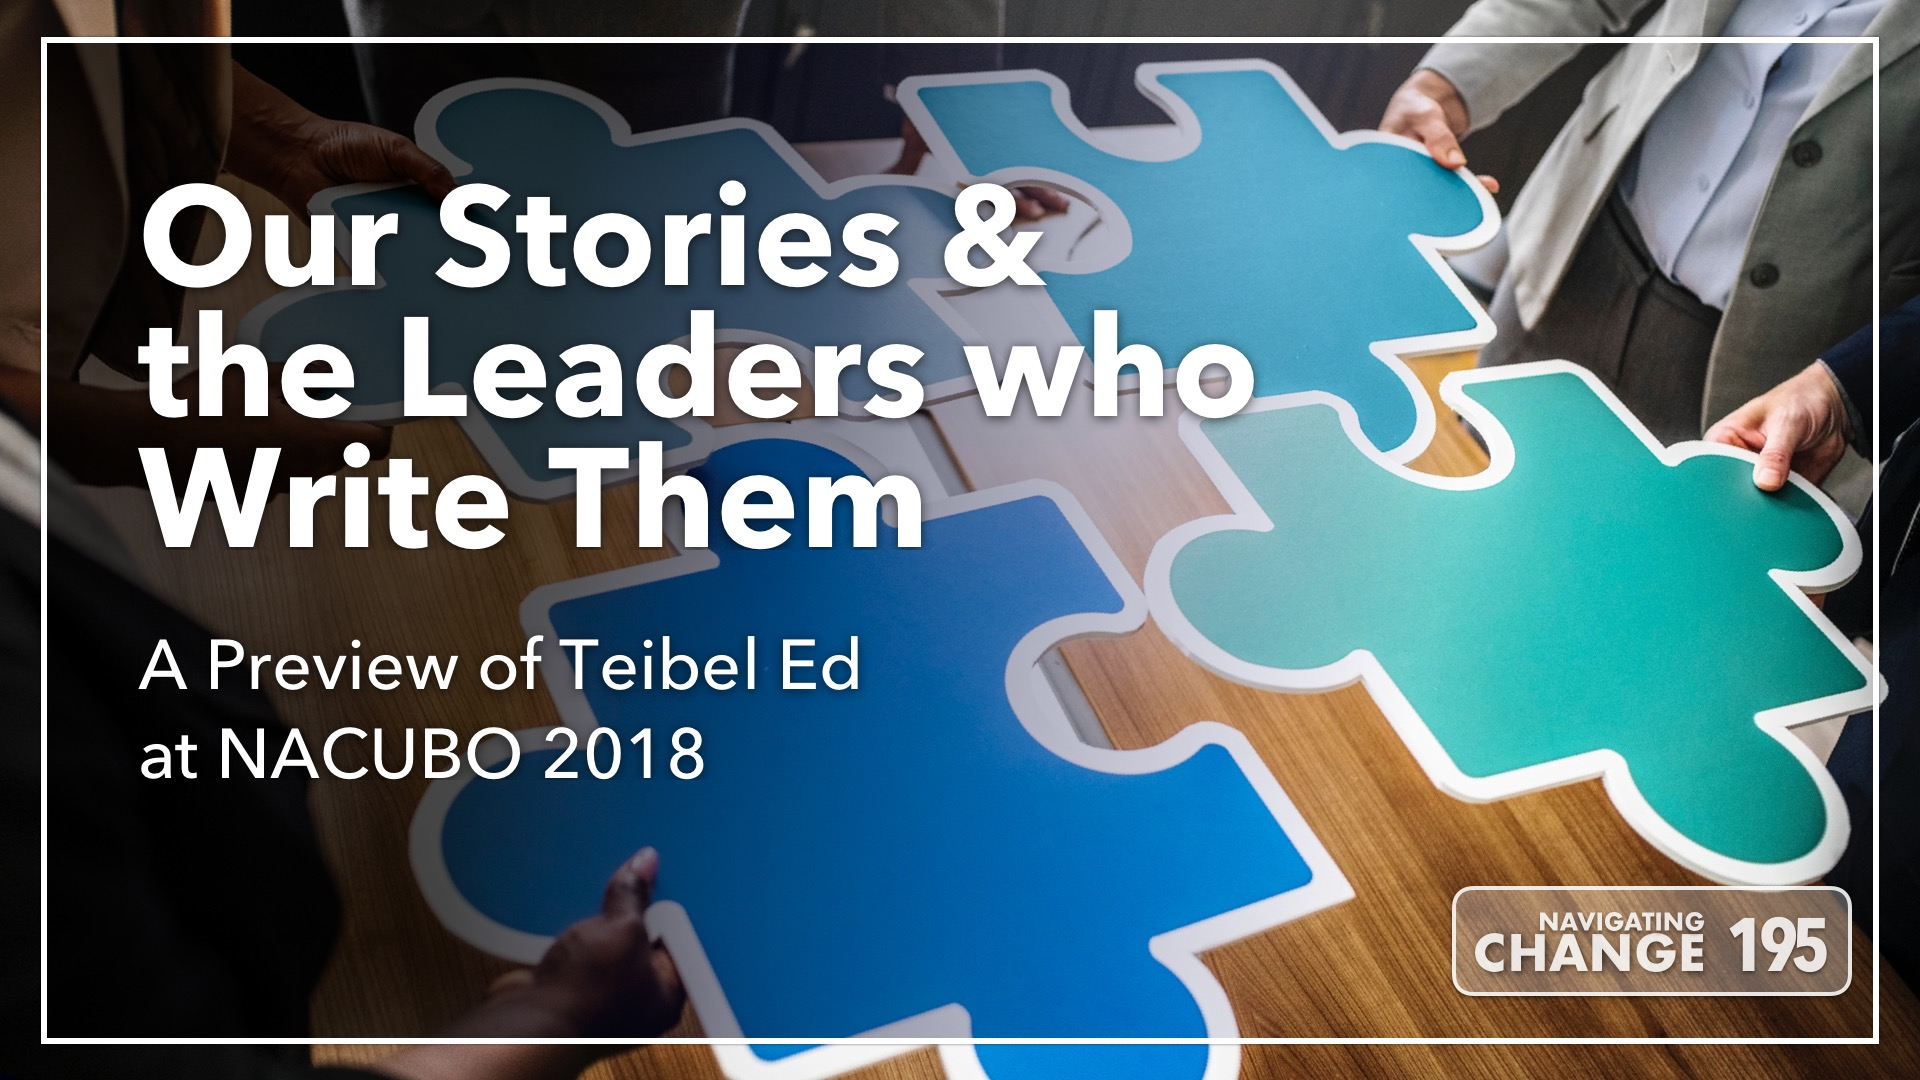 Listen to the Teibel Ed NACUBO 2018 Preview on Navigating Change The Education Podcast